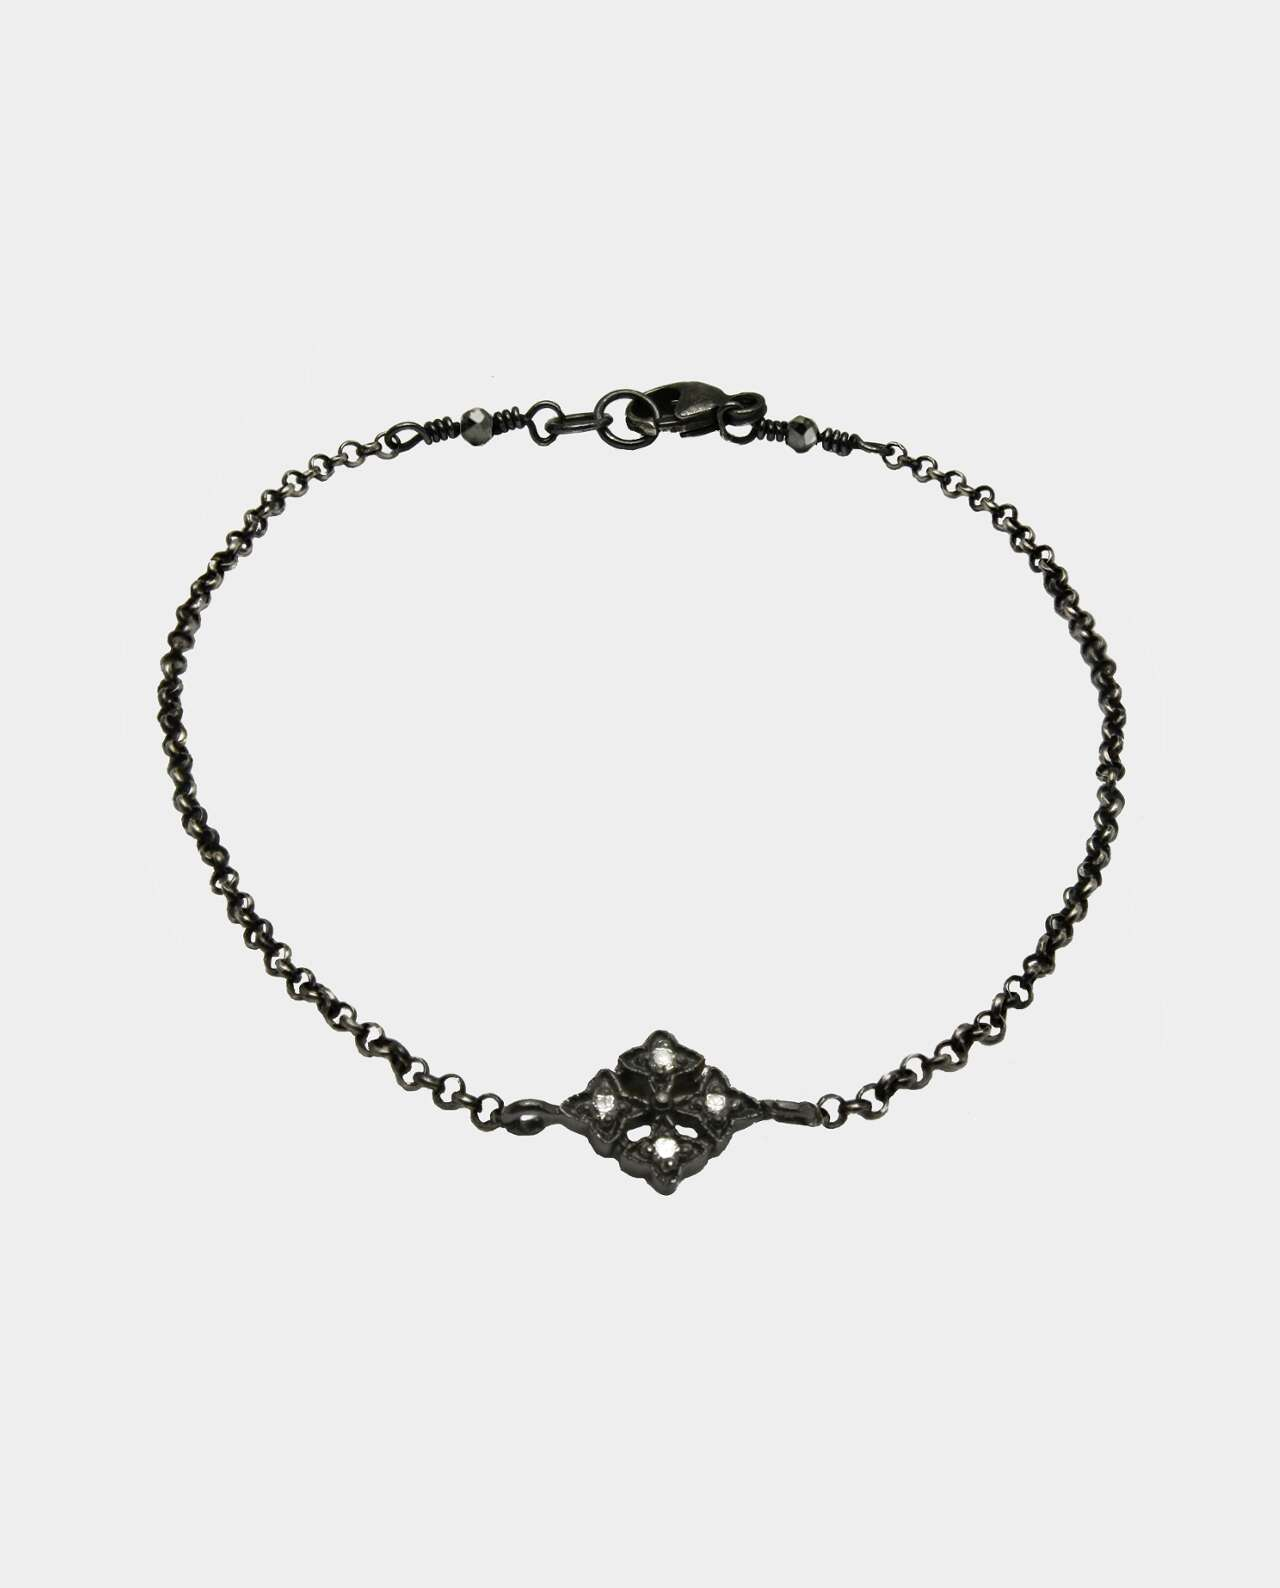 Zirconia that sparkles throughout the color spectrum on black chain of oxidized sterling silver and has a compelling effect